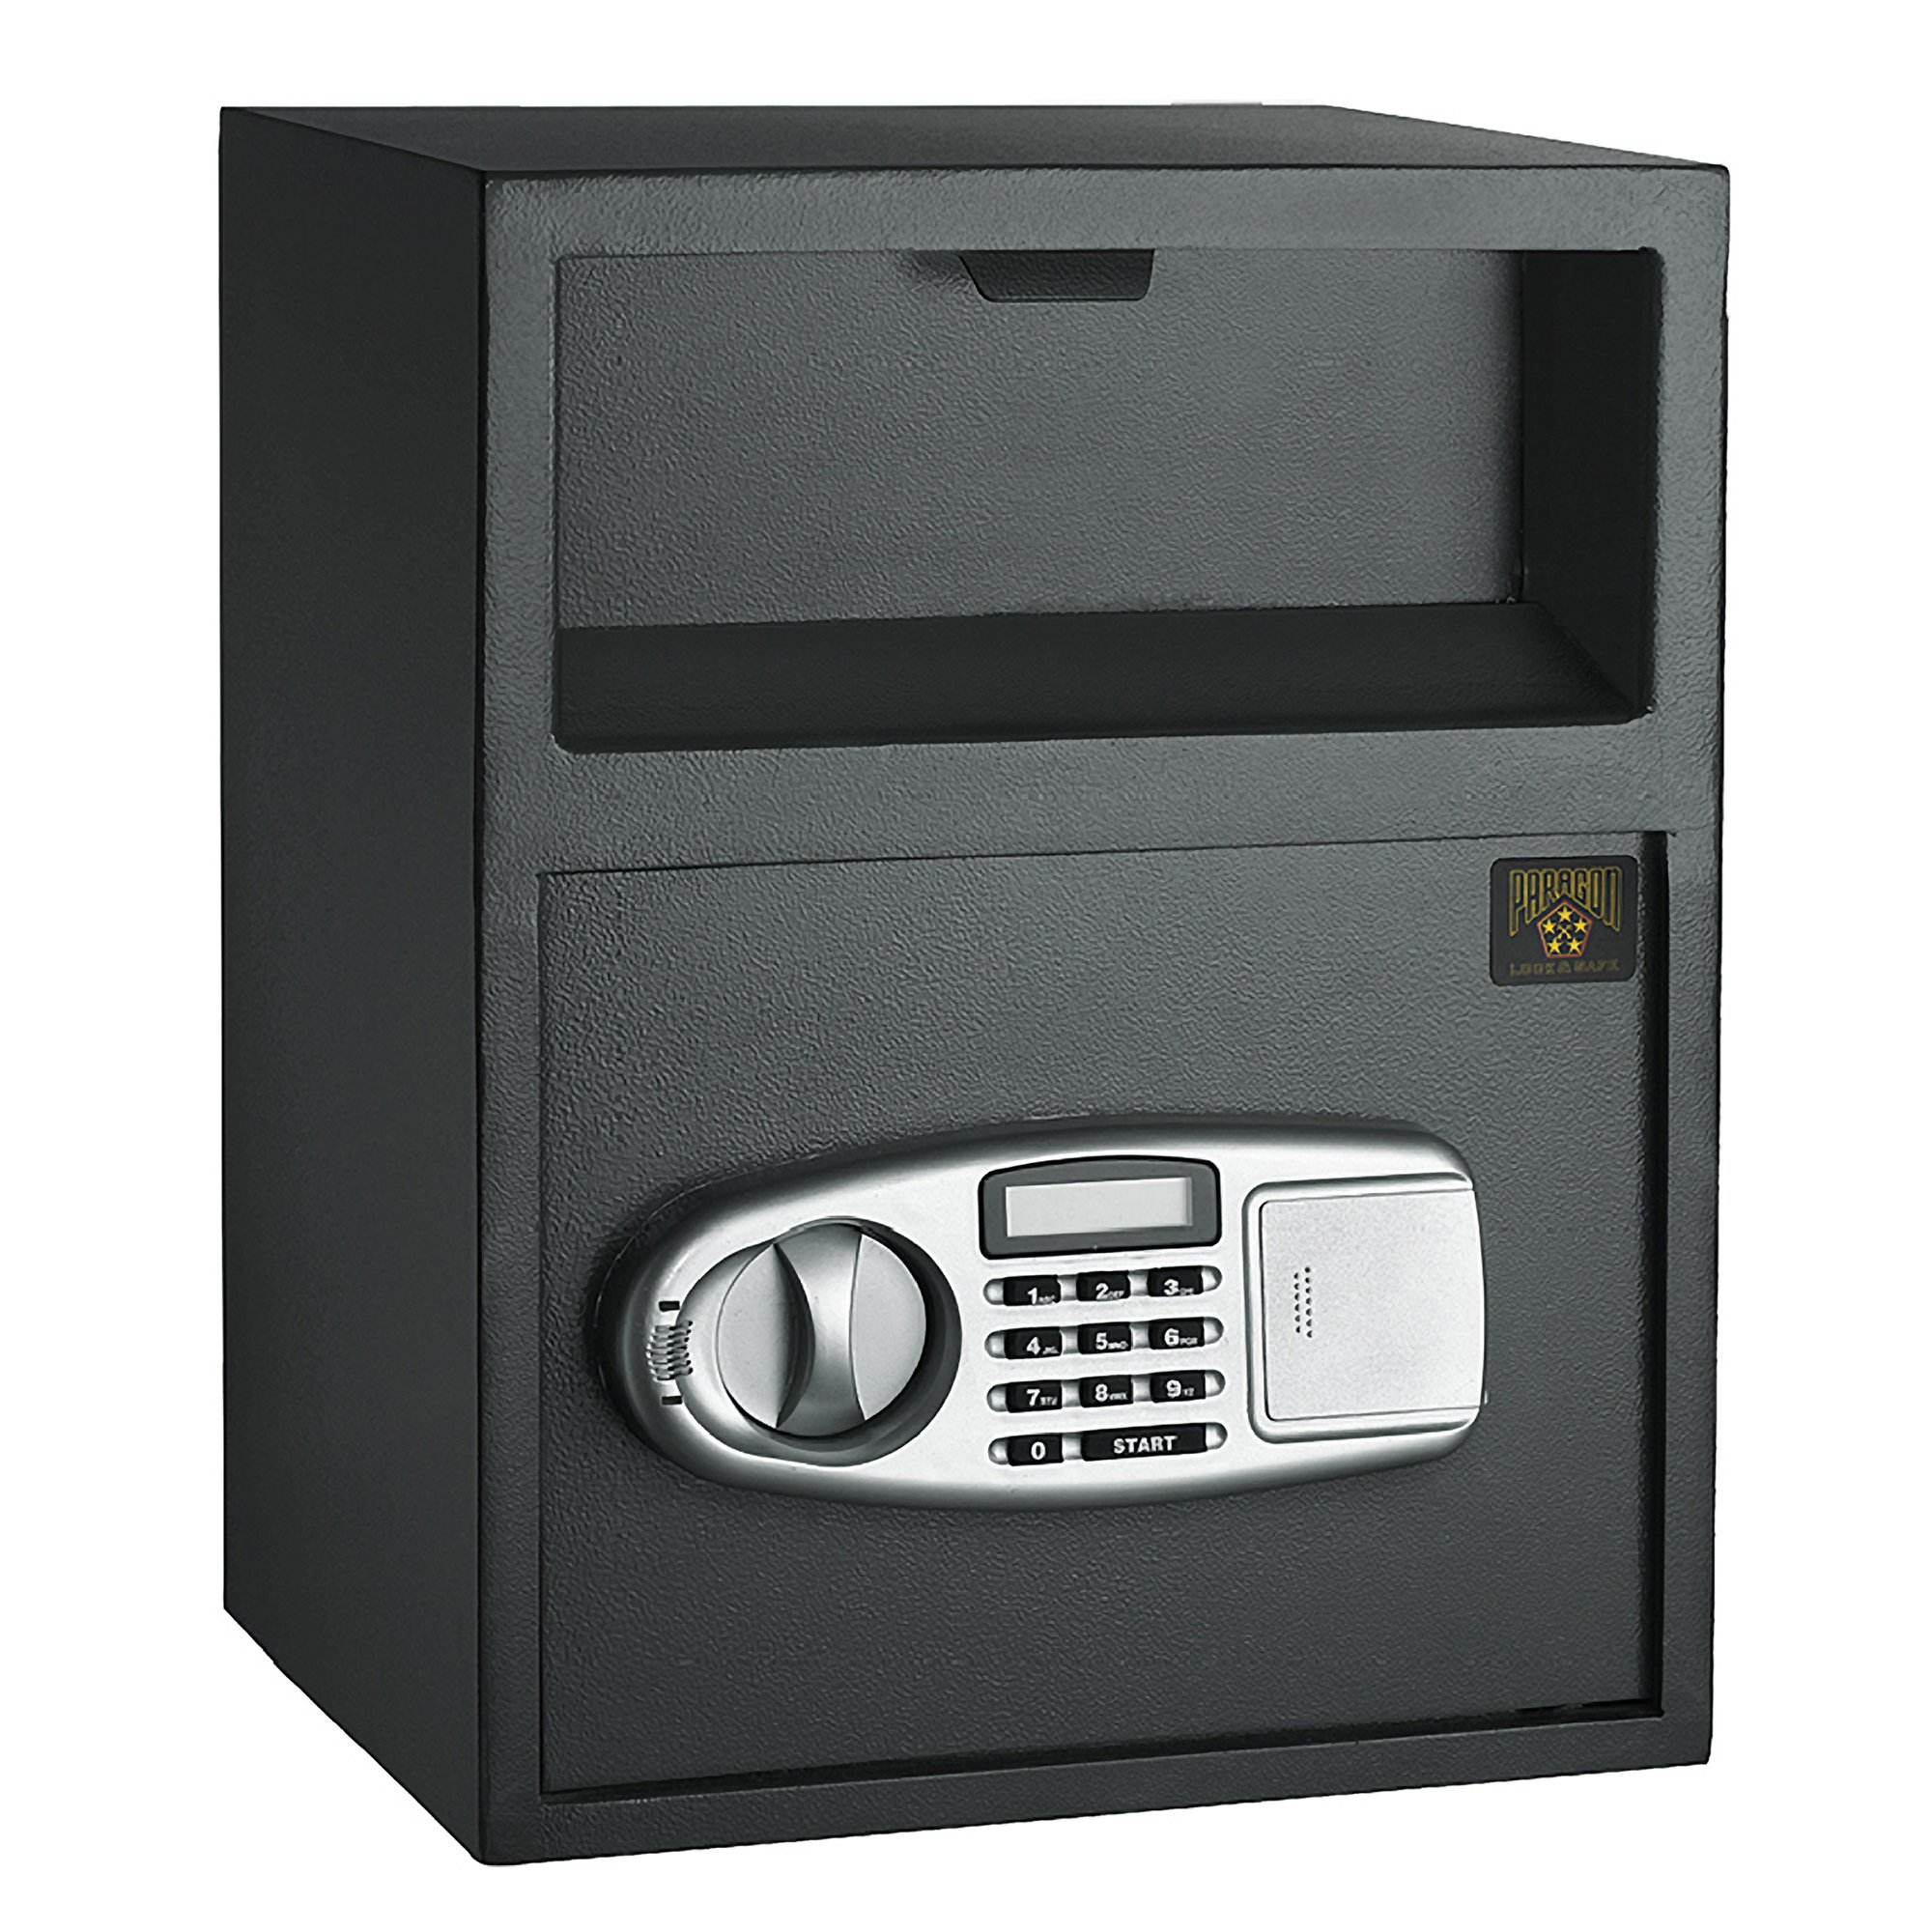 Paragon 7925 Digital Depository Safe .95 CF Front Load Cash Vault Drop Box